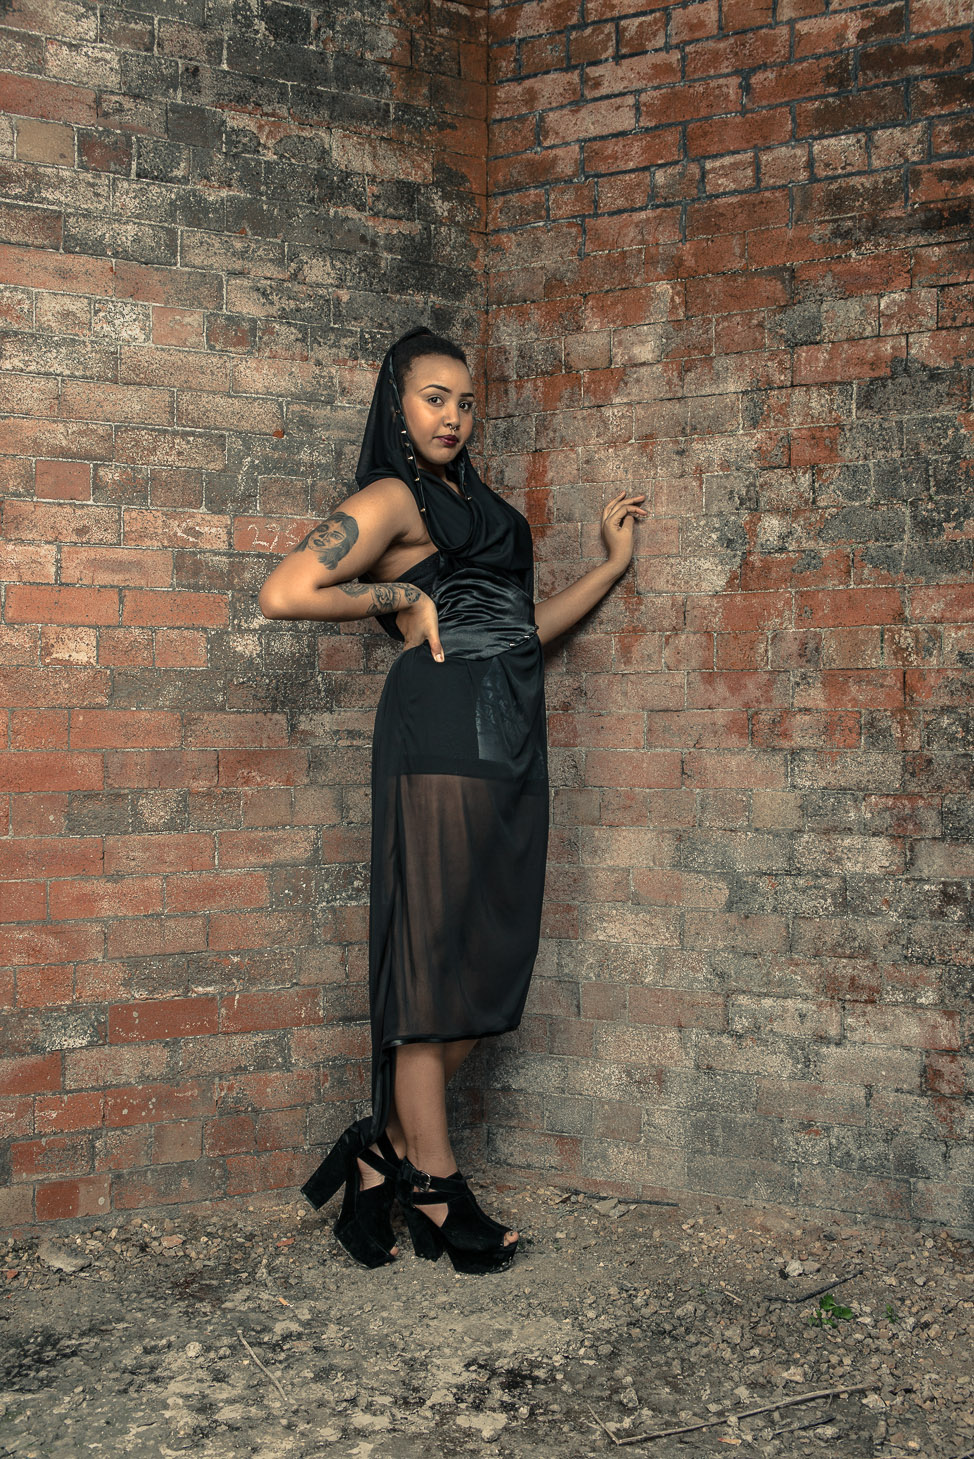 zaramia-ava-zaramiaava-leeds-fashion-designer-ethical-sustainable-tailored-minimalist-sheer-versatile-drape-dress-black-hood-binding-belt-wrap-cowl-styling-bodysuit-womenswear-models-photoshoot-7